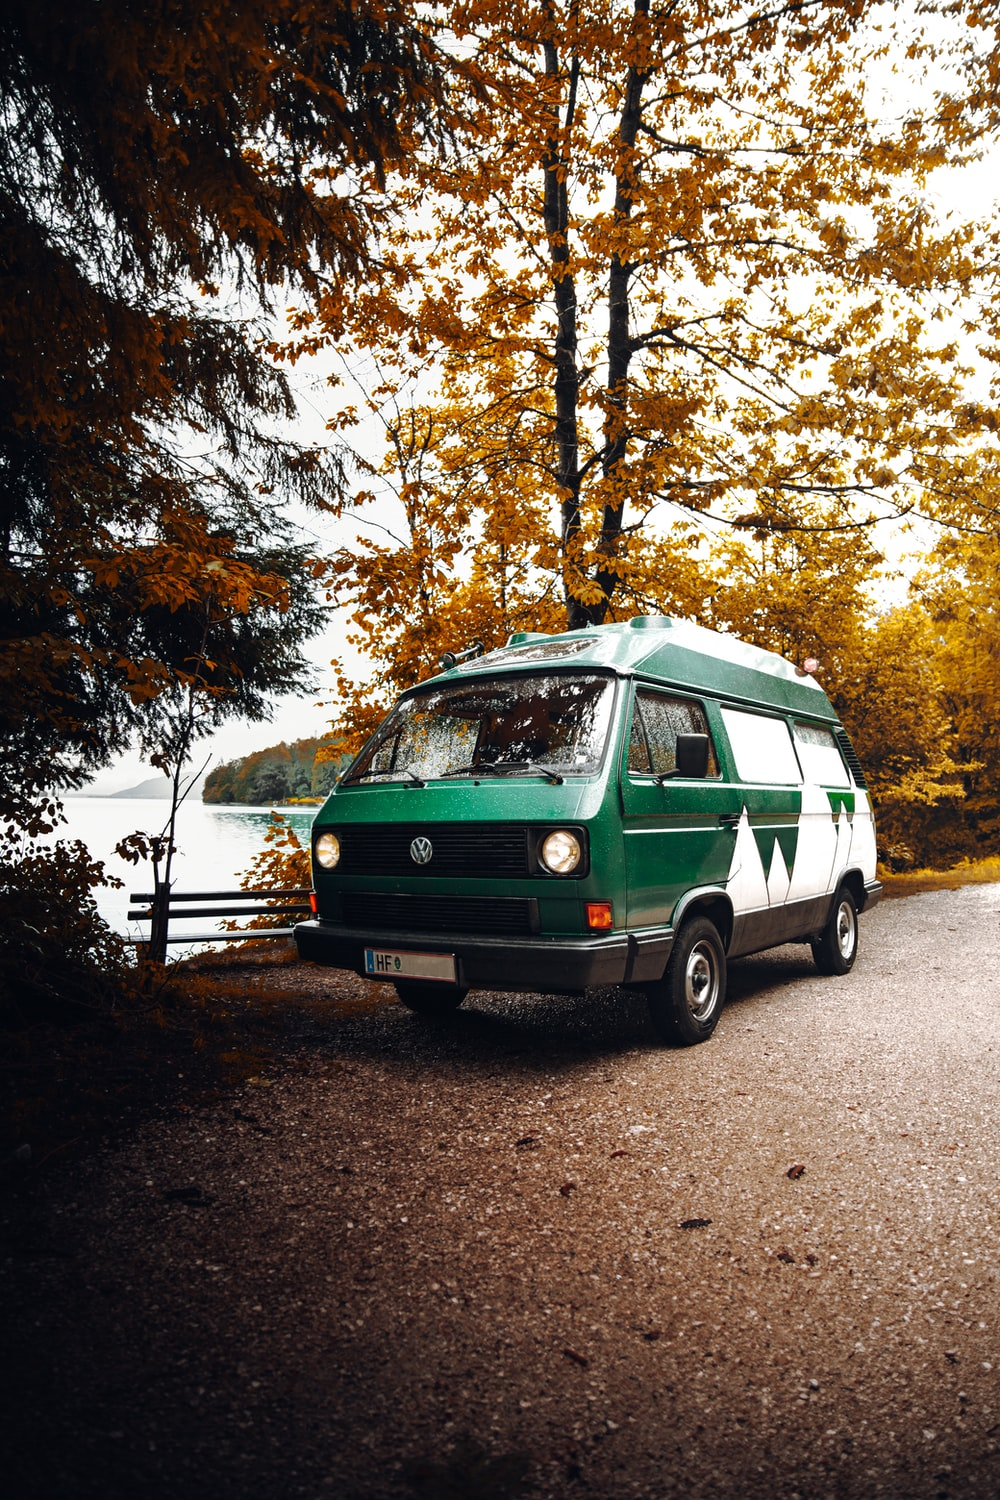 green and white volkswagen t-2 parked on the side of the road